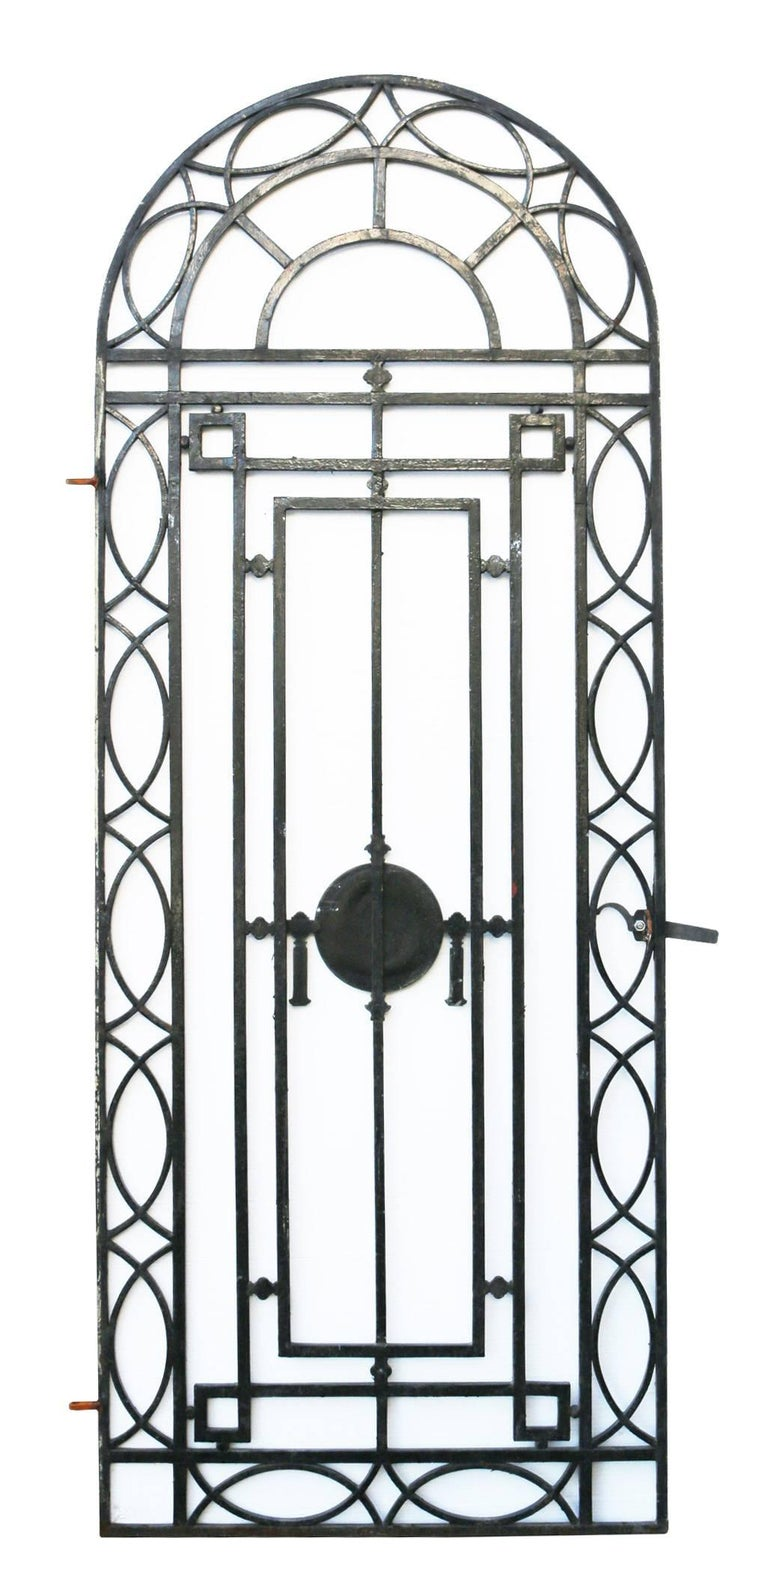 This gate has a latch and hinges fitted. It is in excellent, original condition and would fit an opening of 98-100 cm. Weight 70 kg.